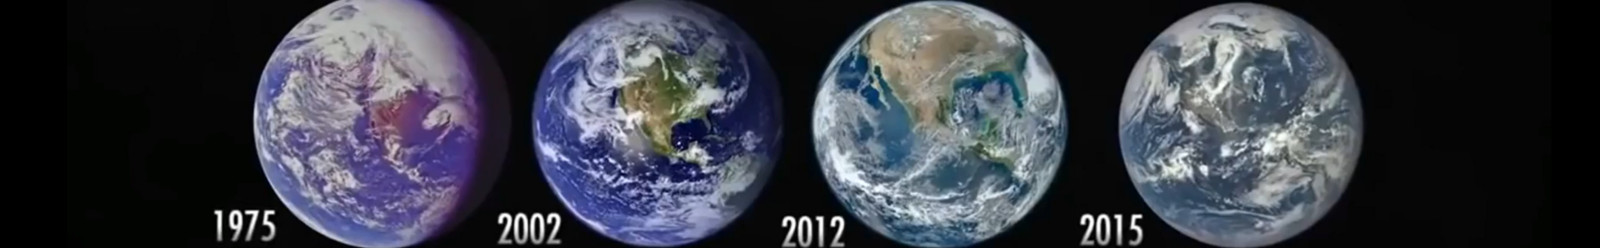 ⇒ The True Face of the Earth, Camera Distance matters 